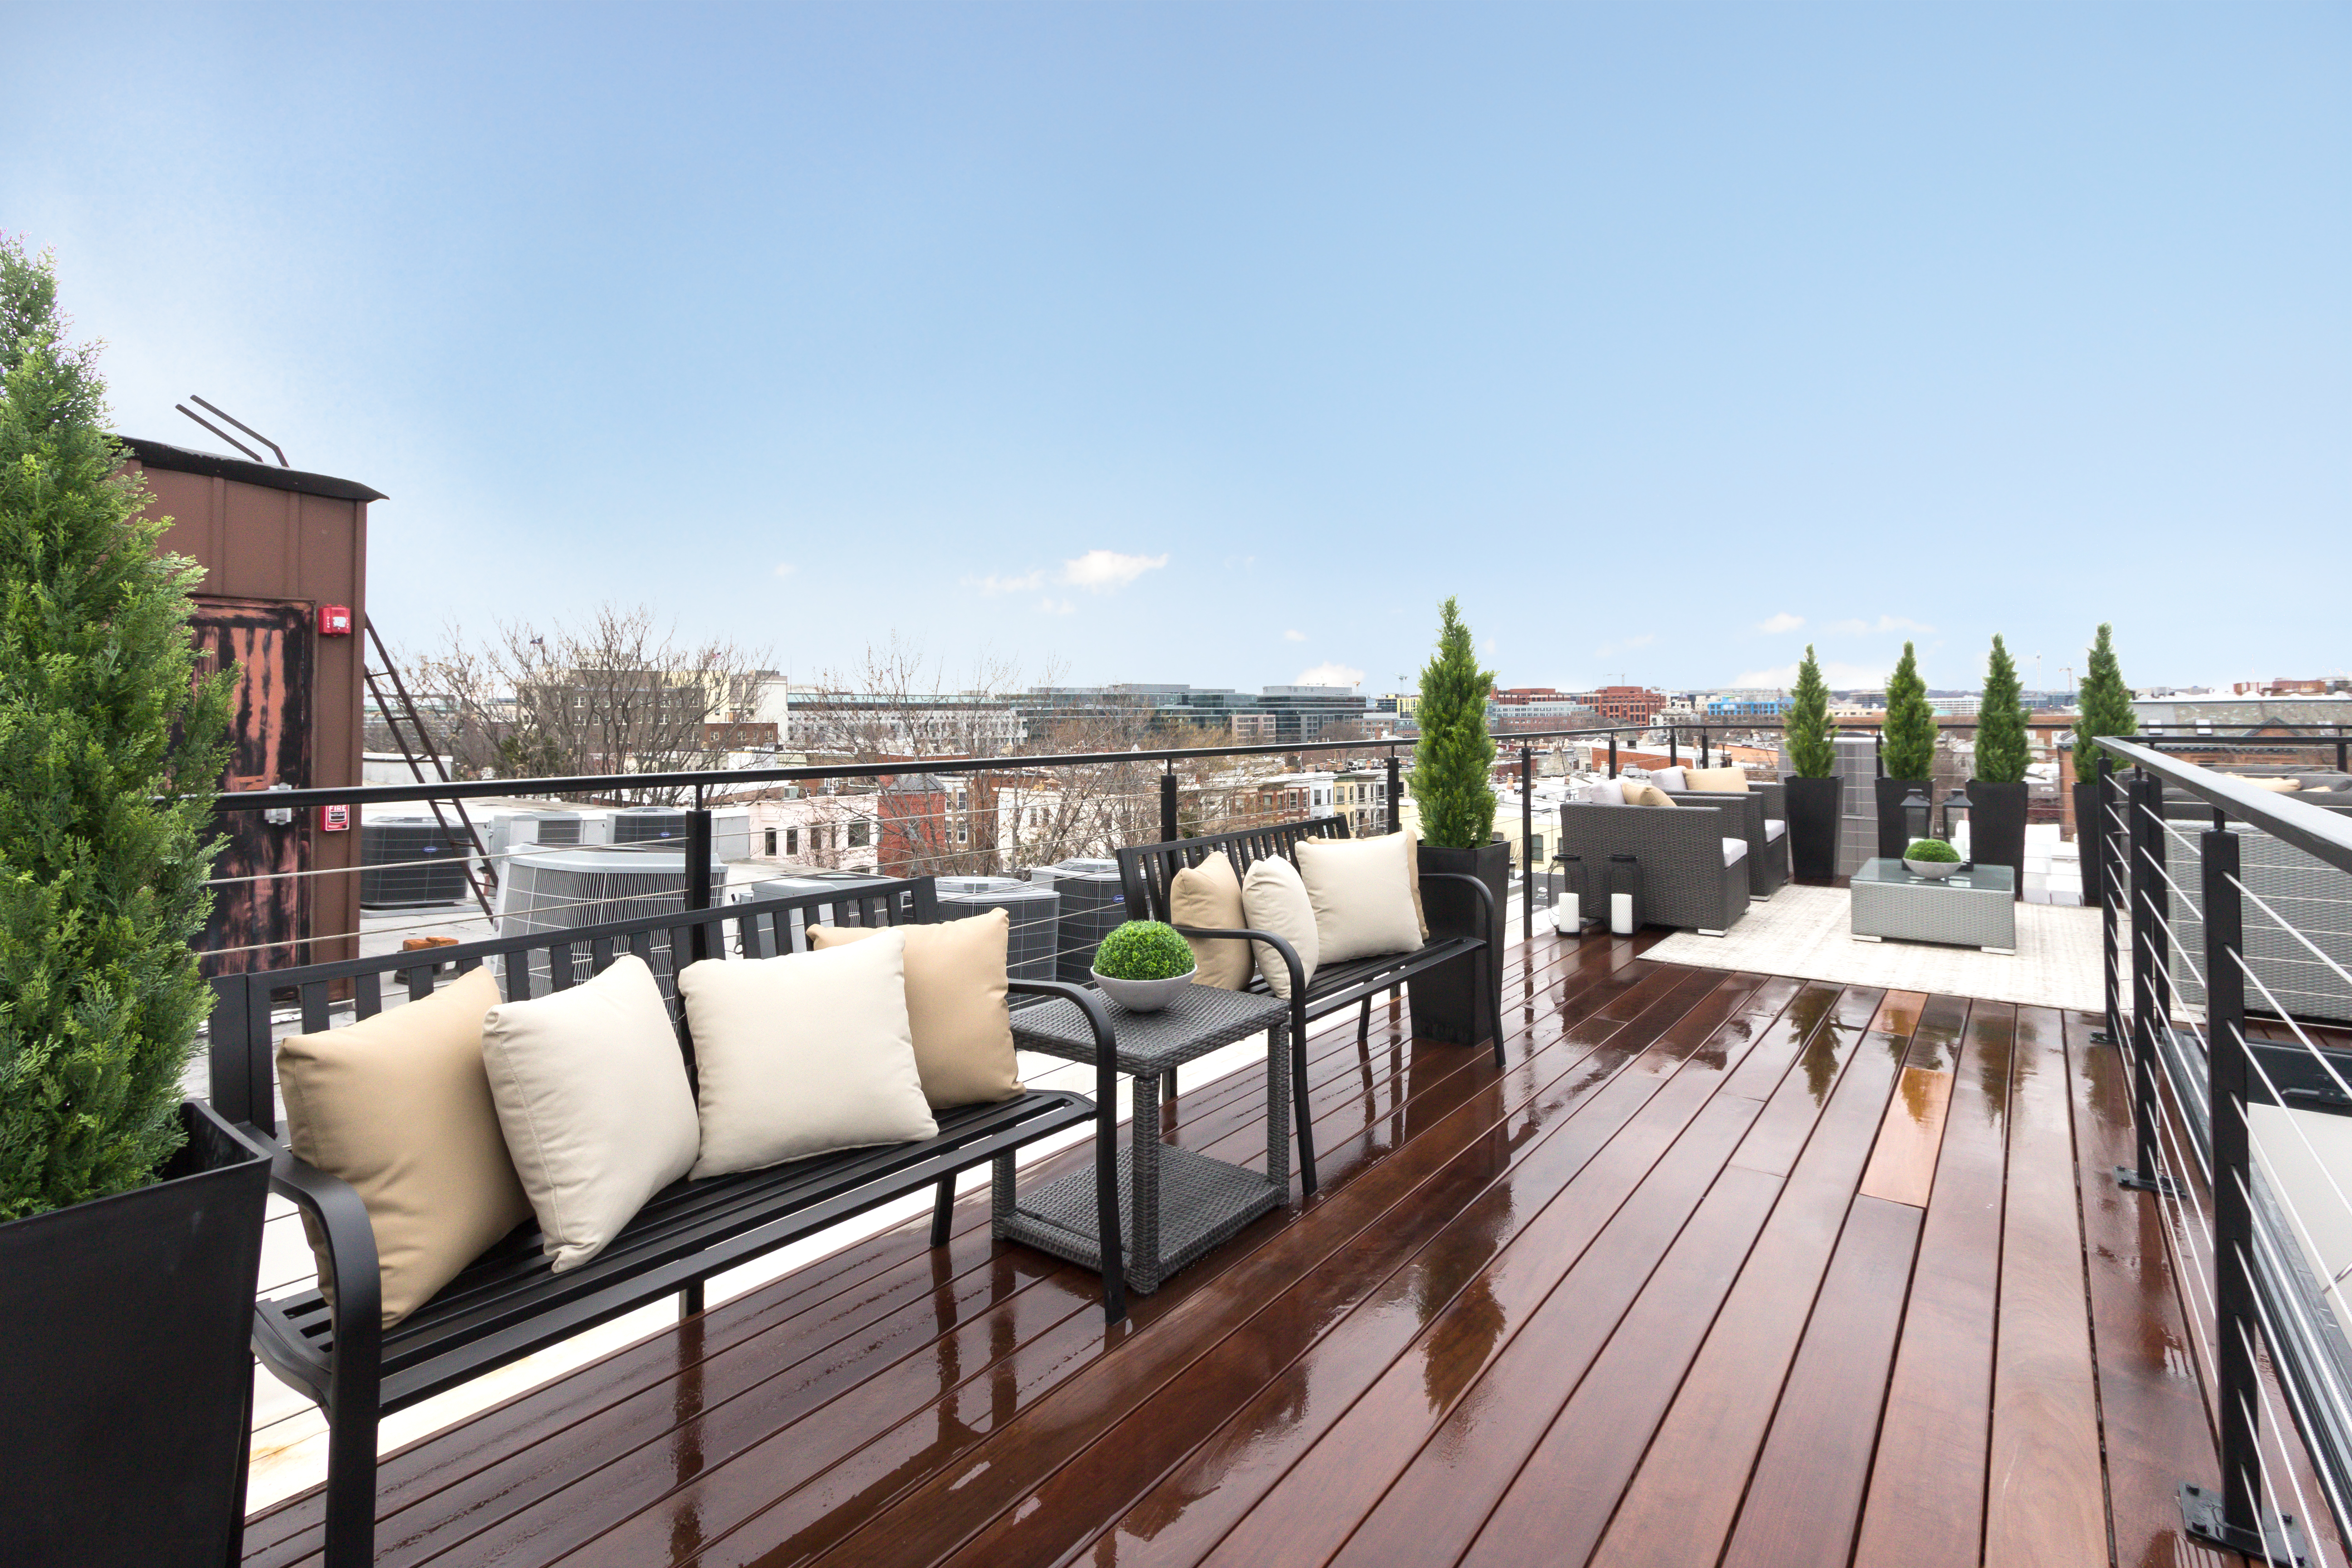 Five Exquisite Townhomes with a Twist Debut on Capitol Hill: Figure 5